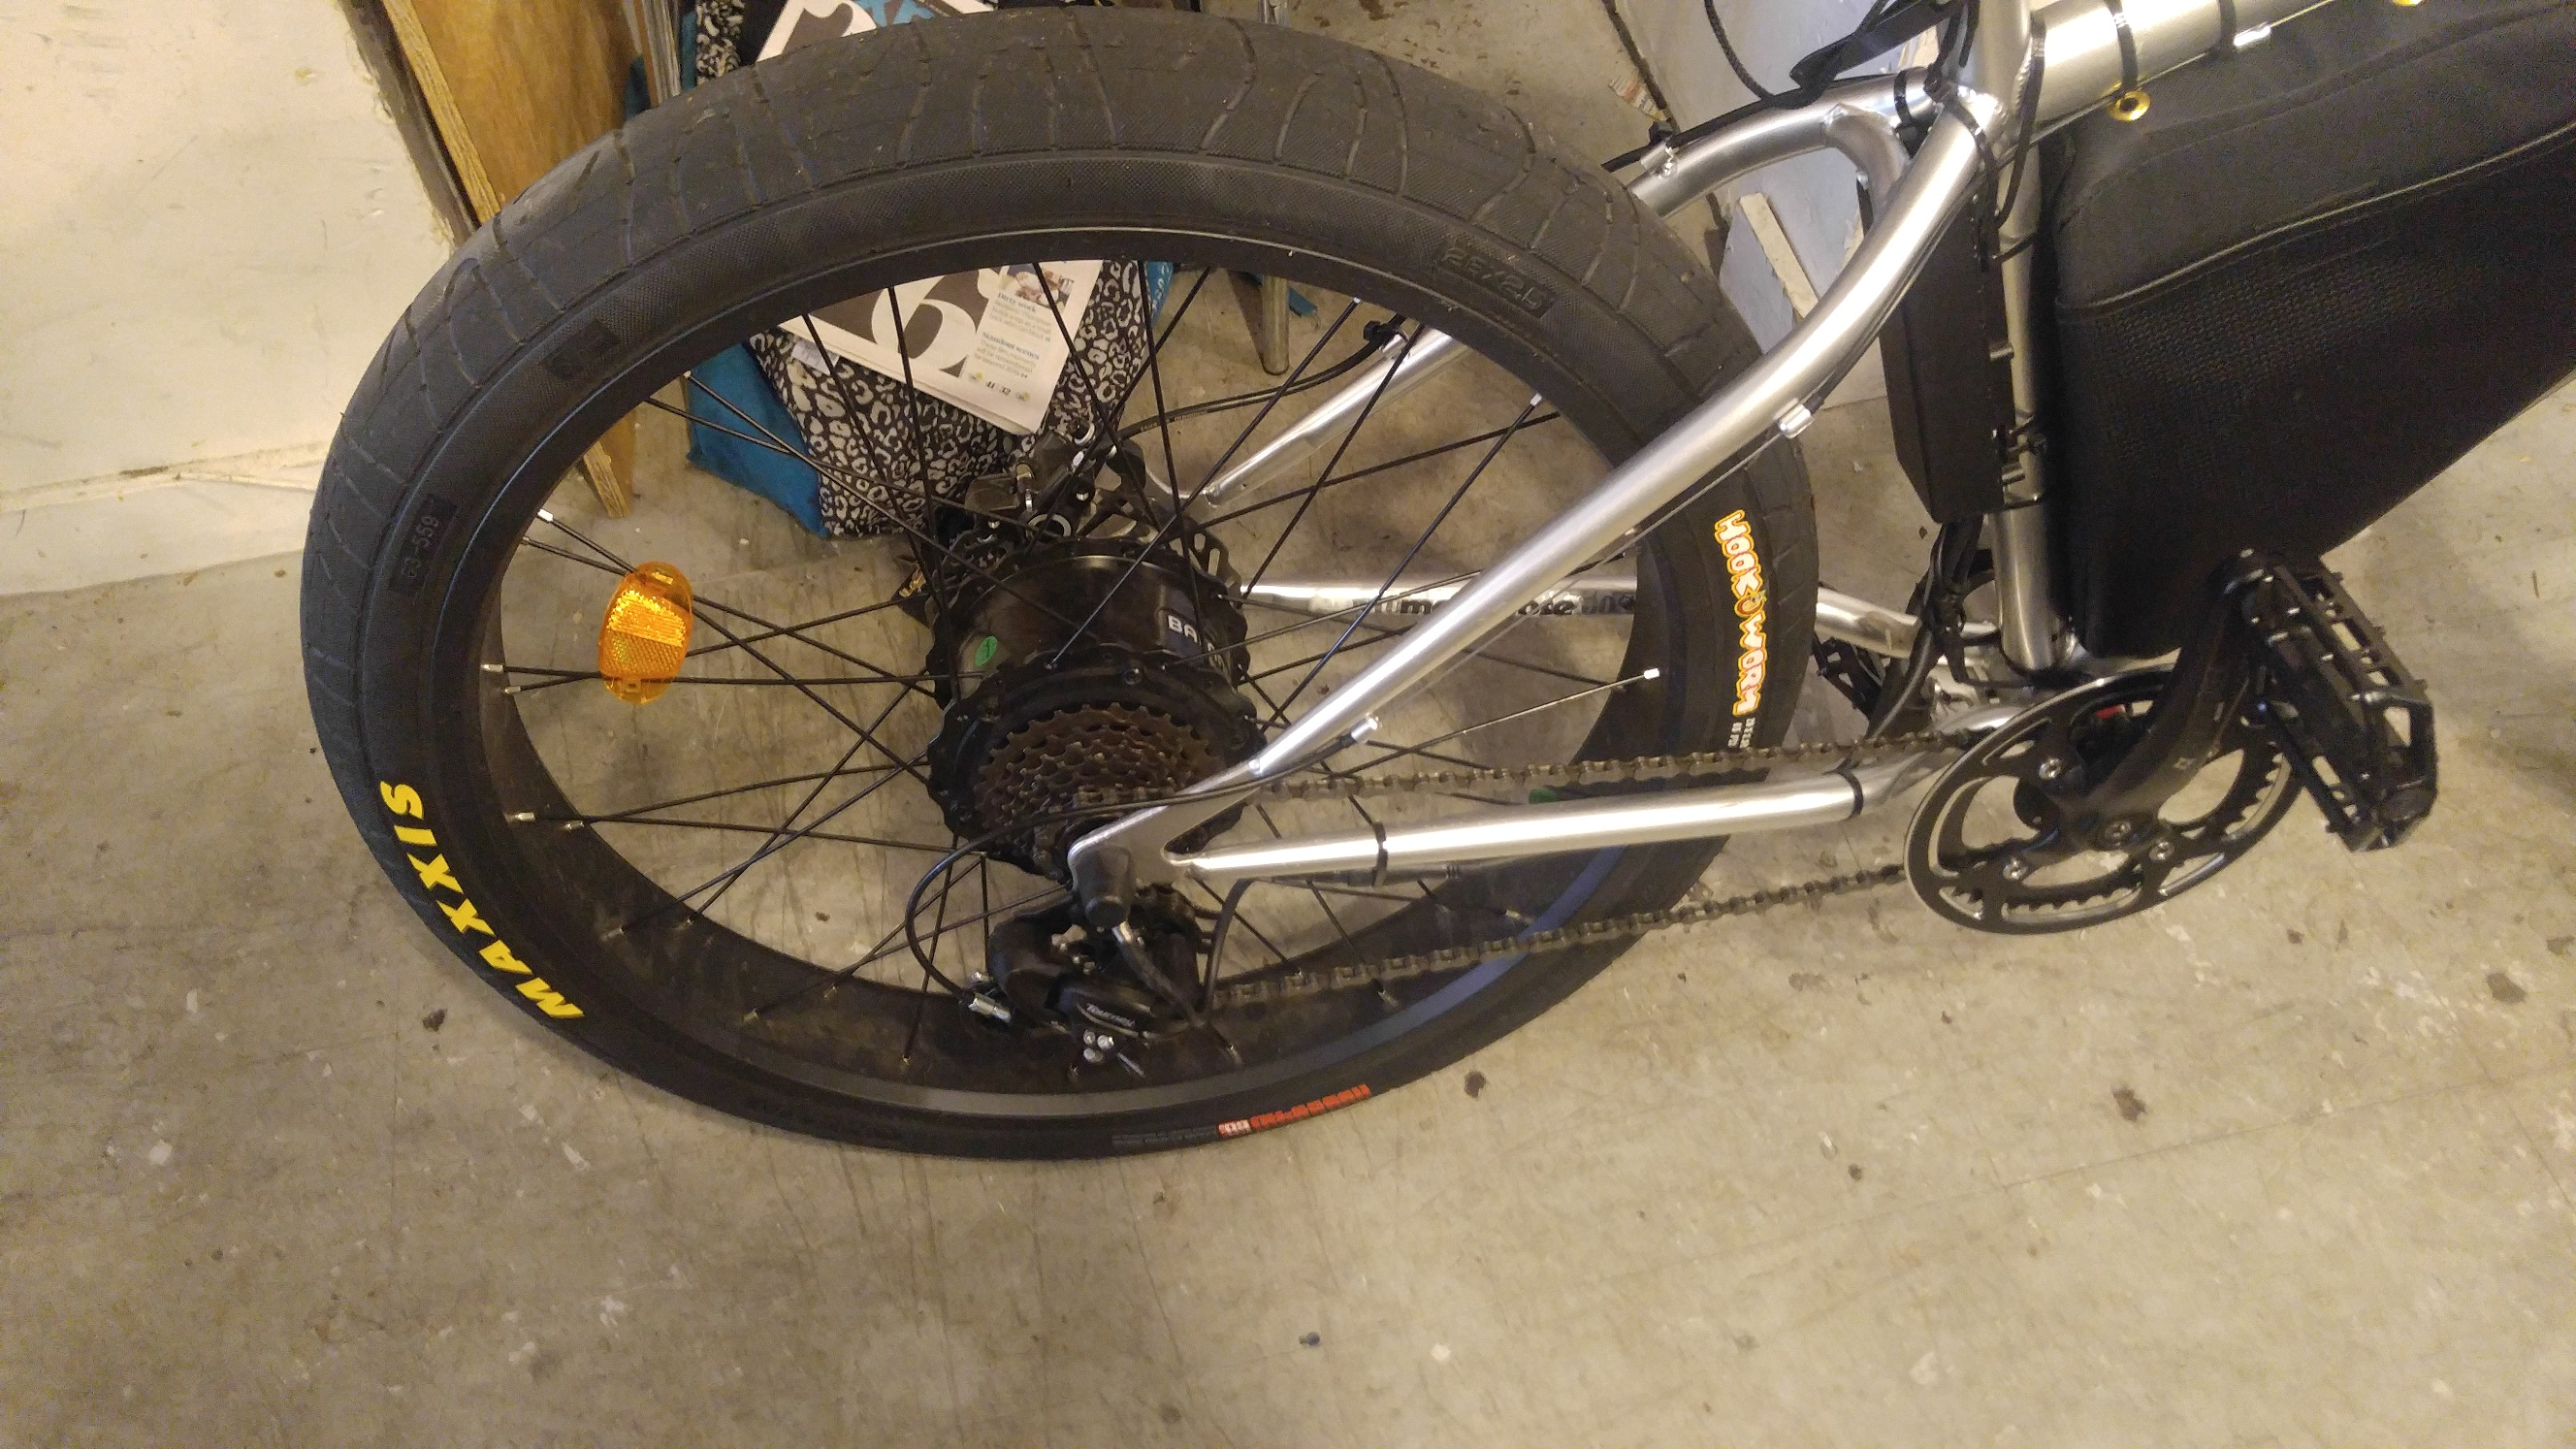 Hot Rodded Rad | Electric Bike Forum - Q&A, Help, Reviews and